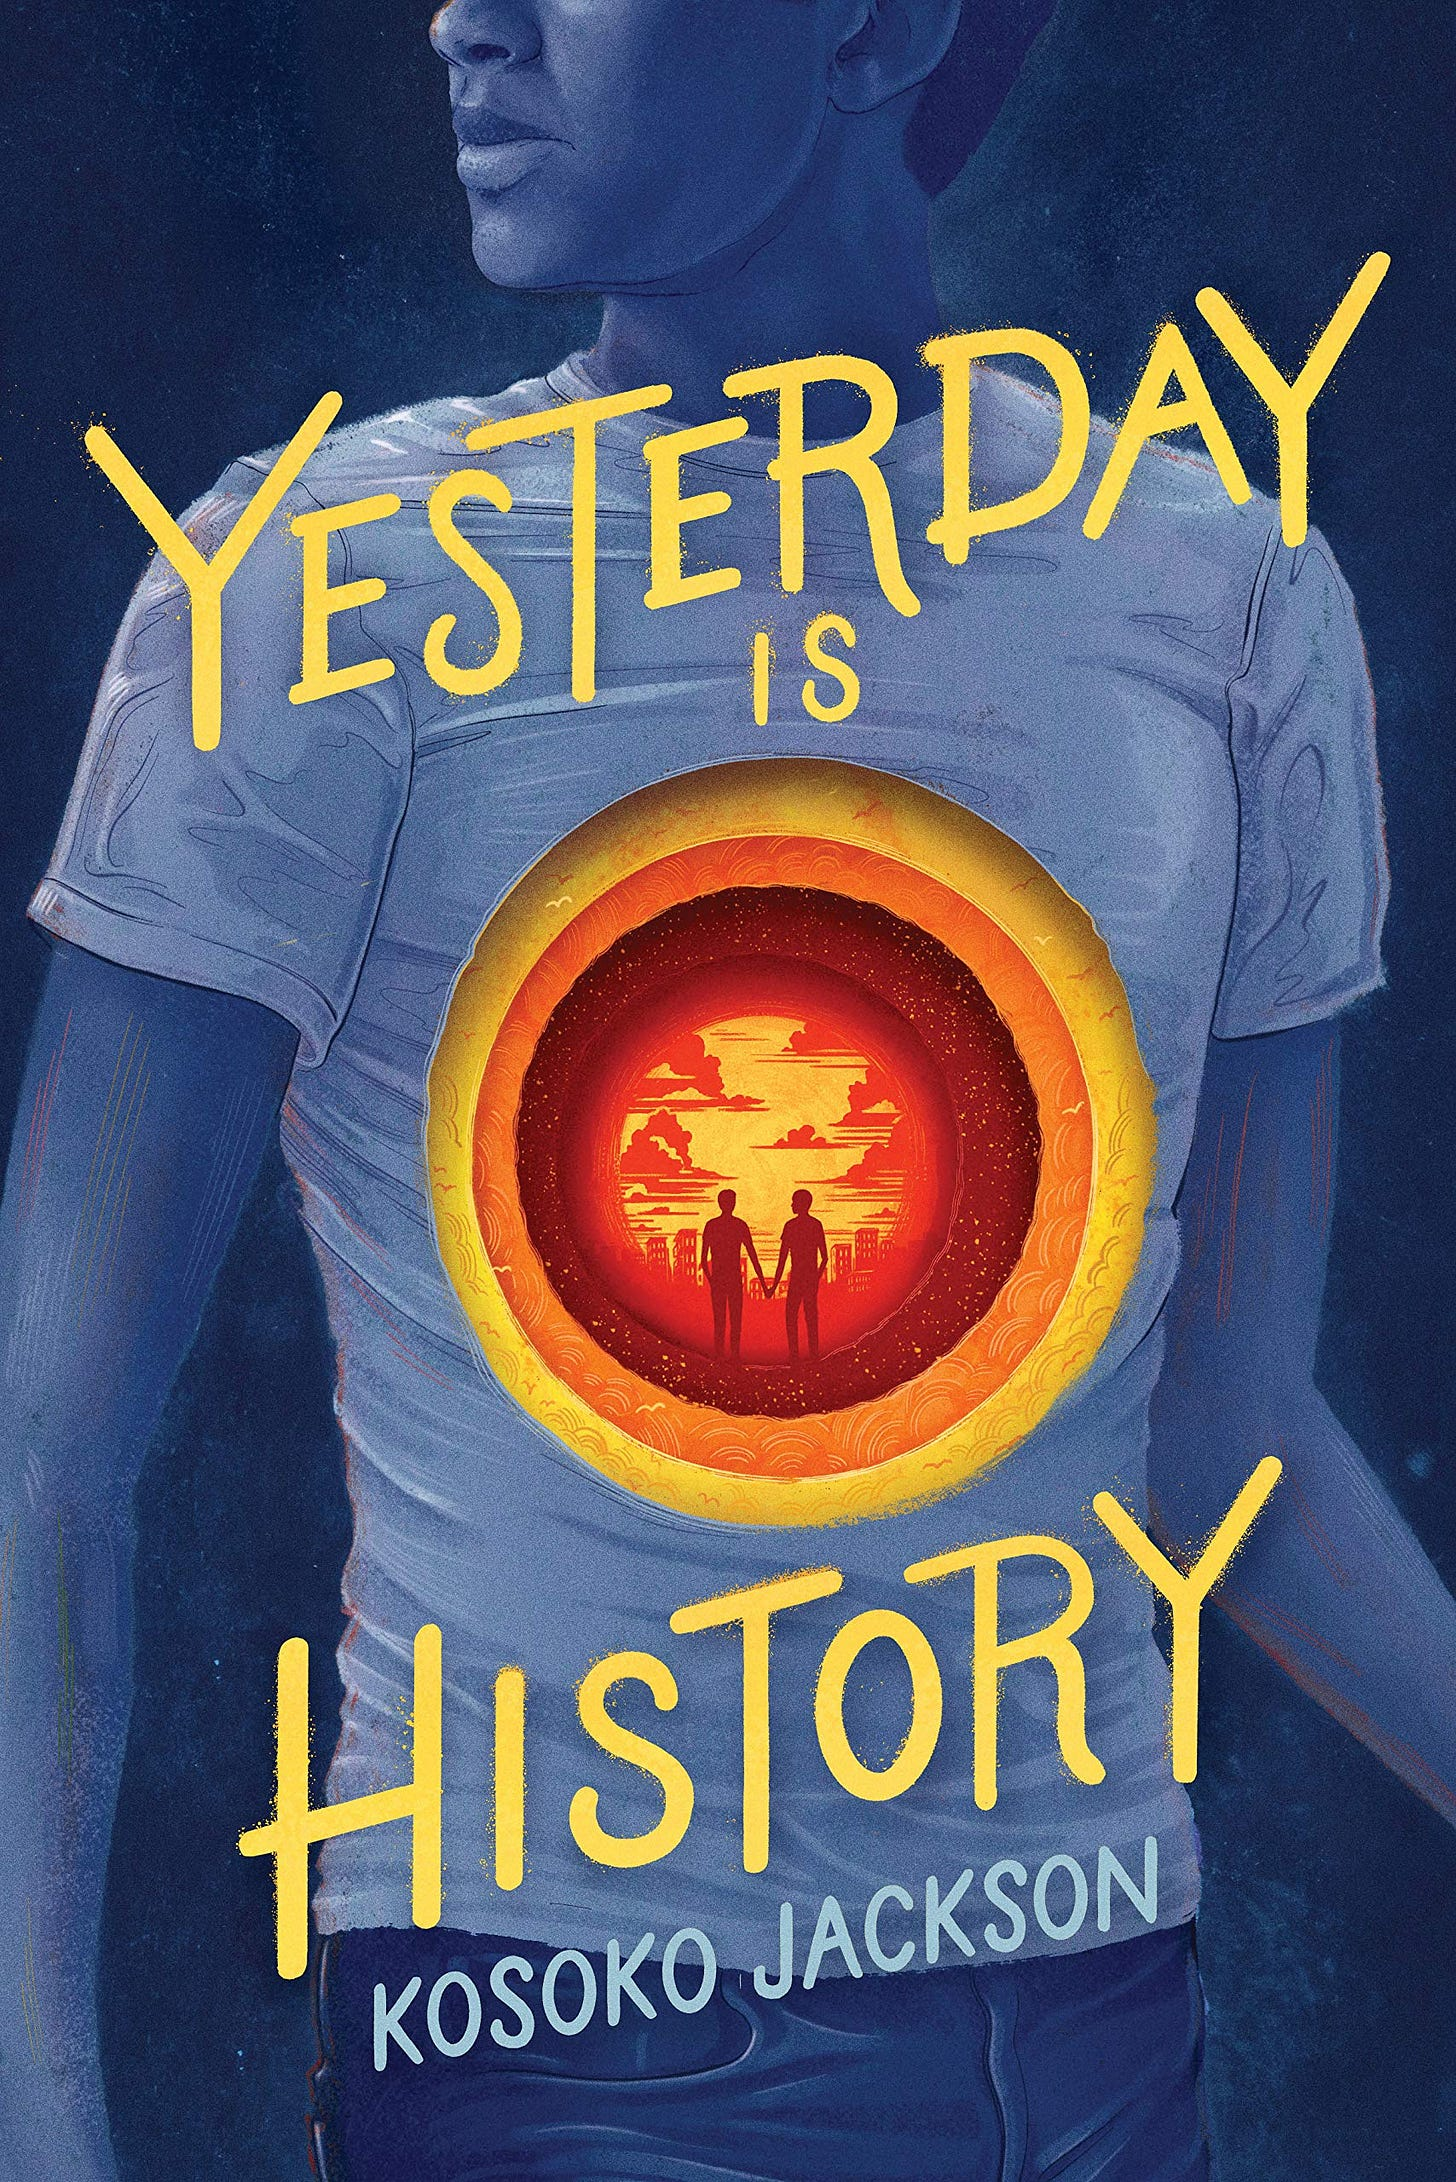 Amazon.com: Yesterday Is History (9781492694342): Jackson, Kosoko: Books